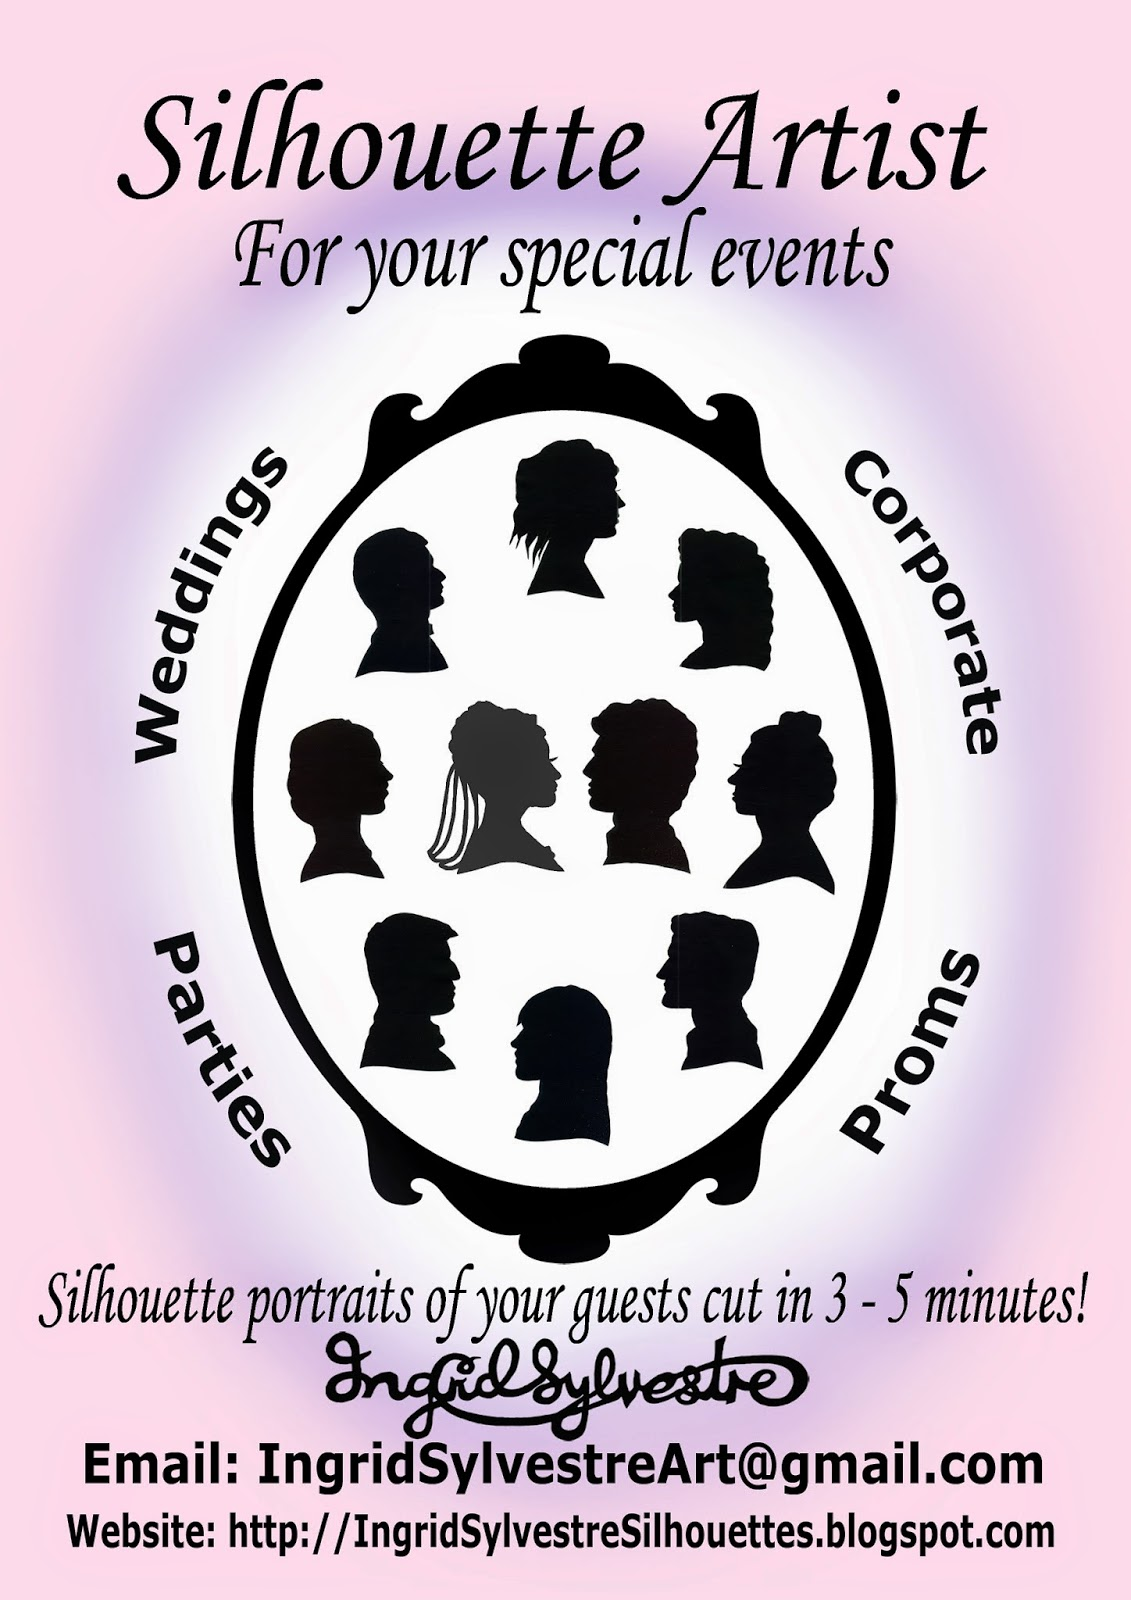 Fun Wedding ideas. Wedding Day Entertainment Ideas. Unique ideas for Wedding Reception Entertainment. Great ideas for unusual wedding day entertainment. Wedding event ideas for entertainment during reception. Unusual interesting fun Wedding planning ideas.  Silhouettes hand cut in 3 - 5 minutes by UK silhouette artist Ingrid Sylvestre